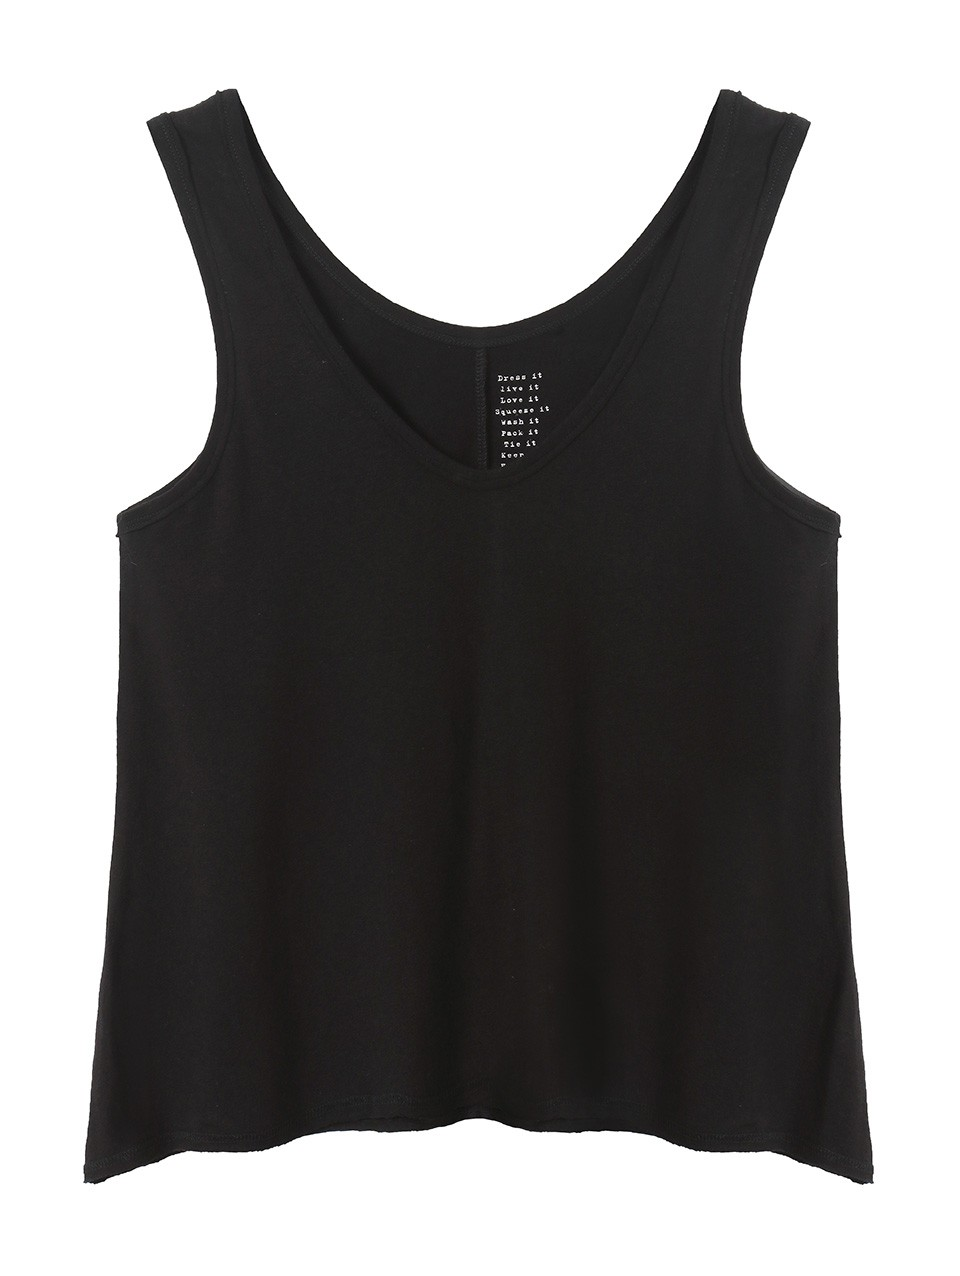 Sierra V-neck Tank Top